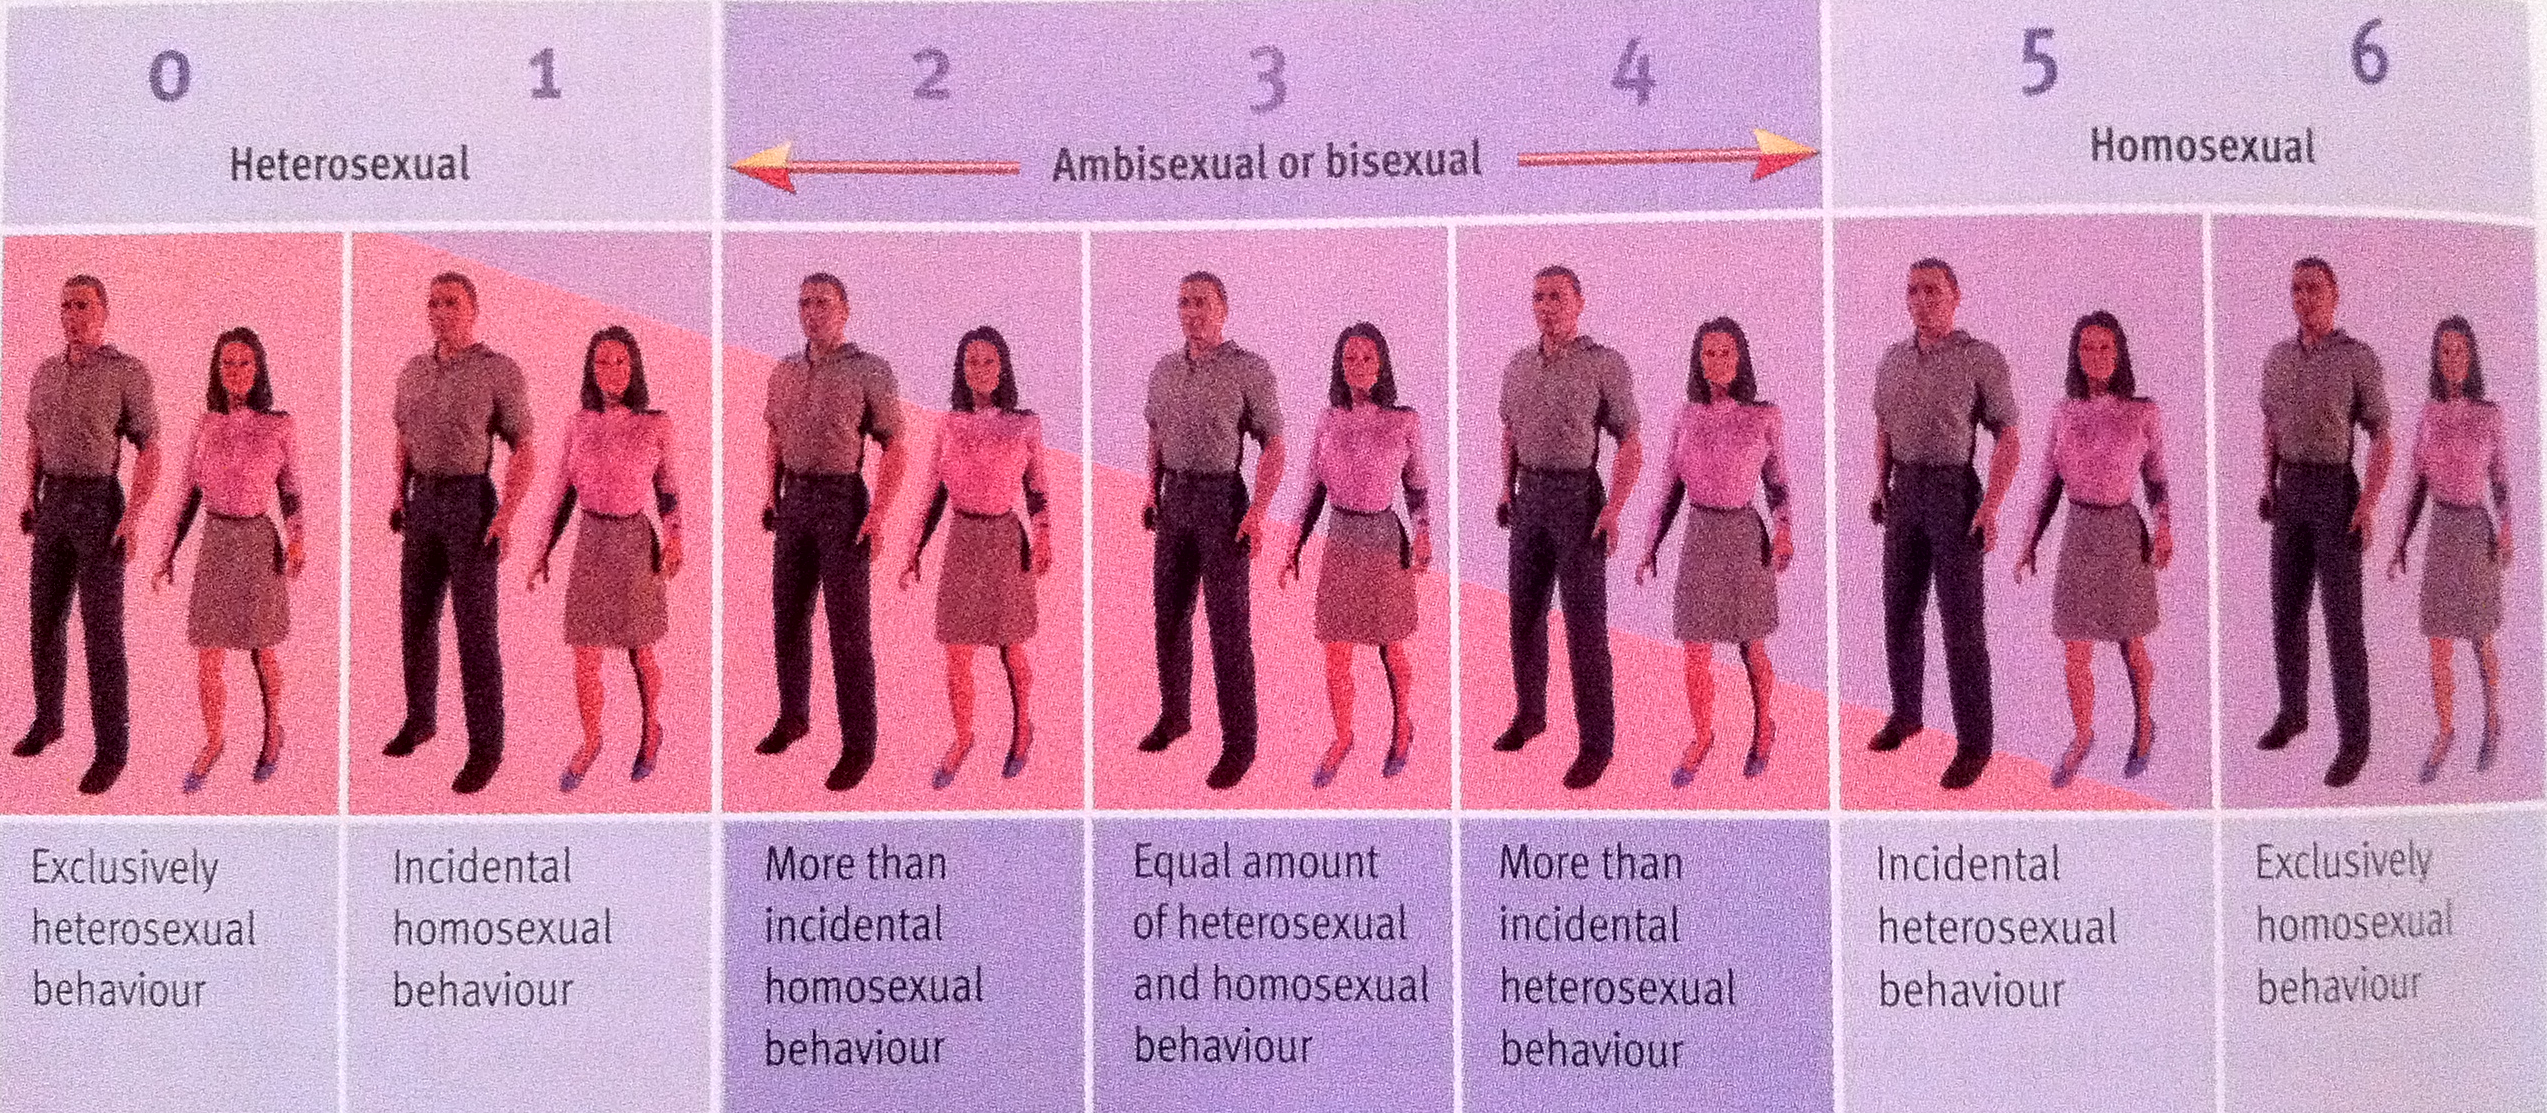 relationship and sexuality scale